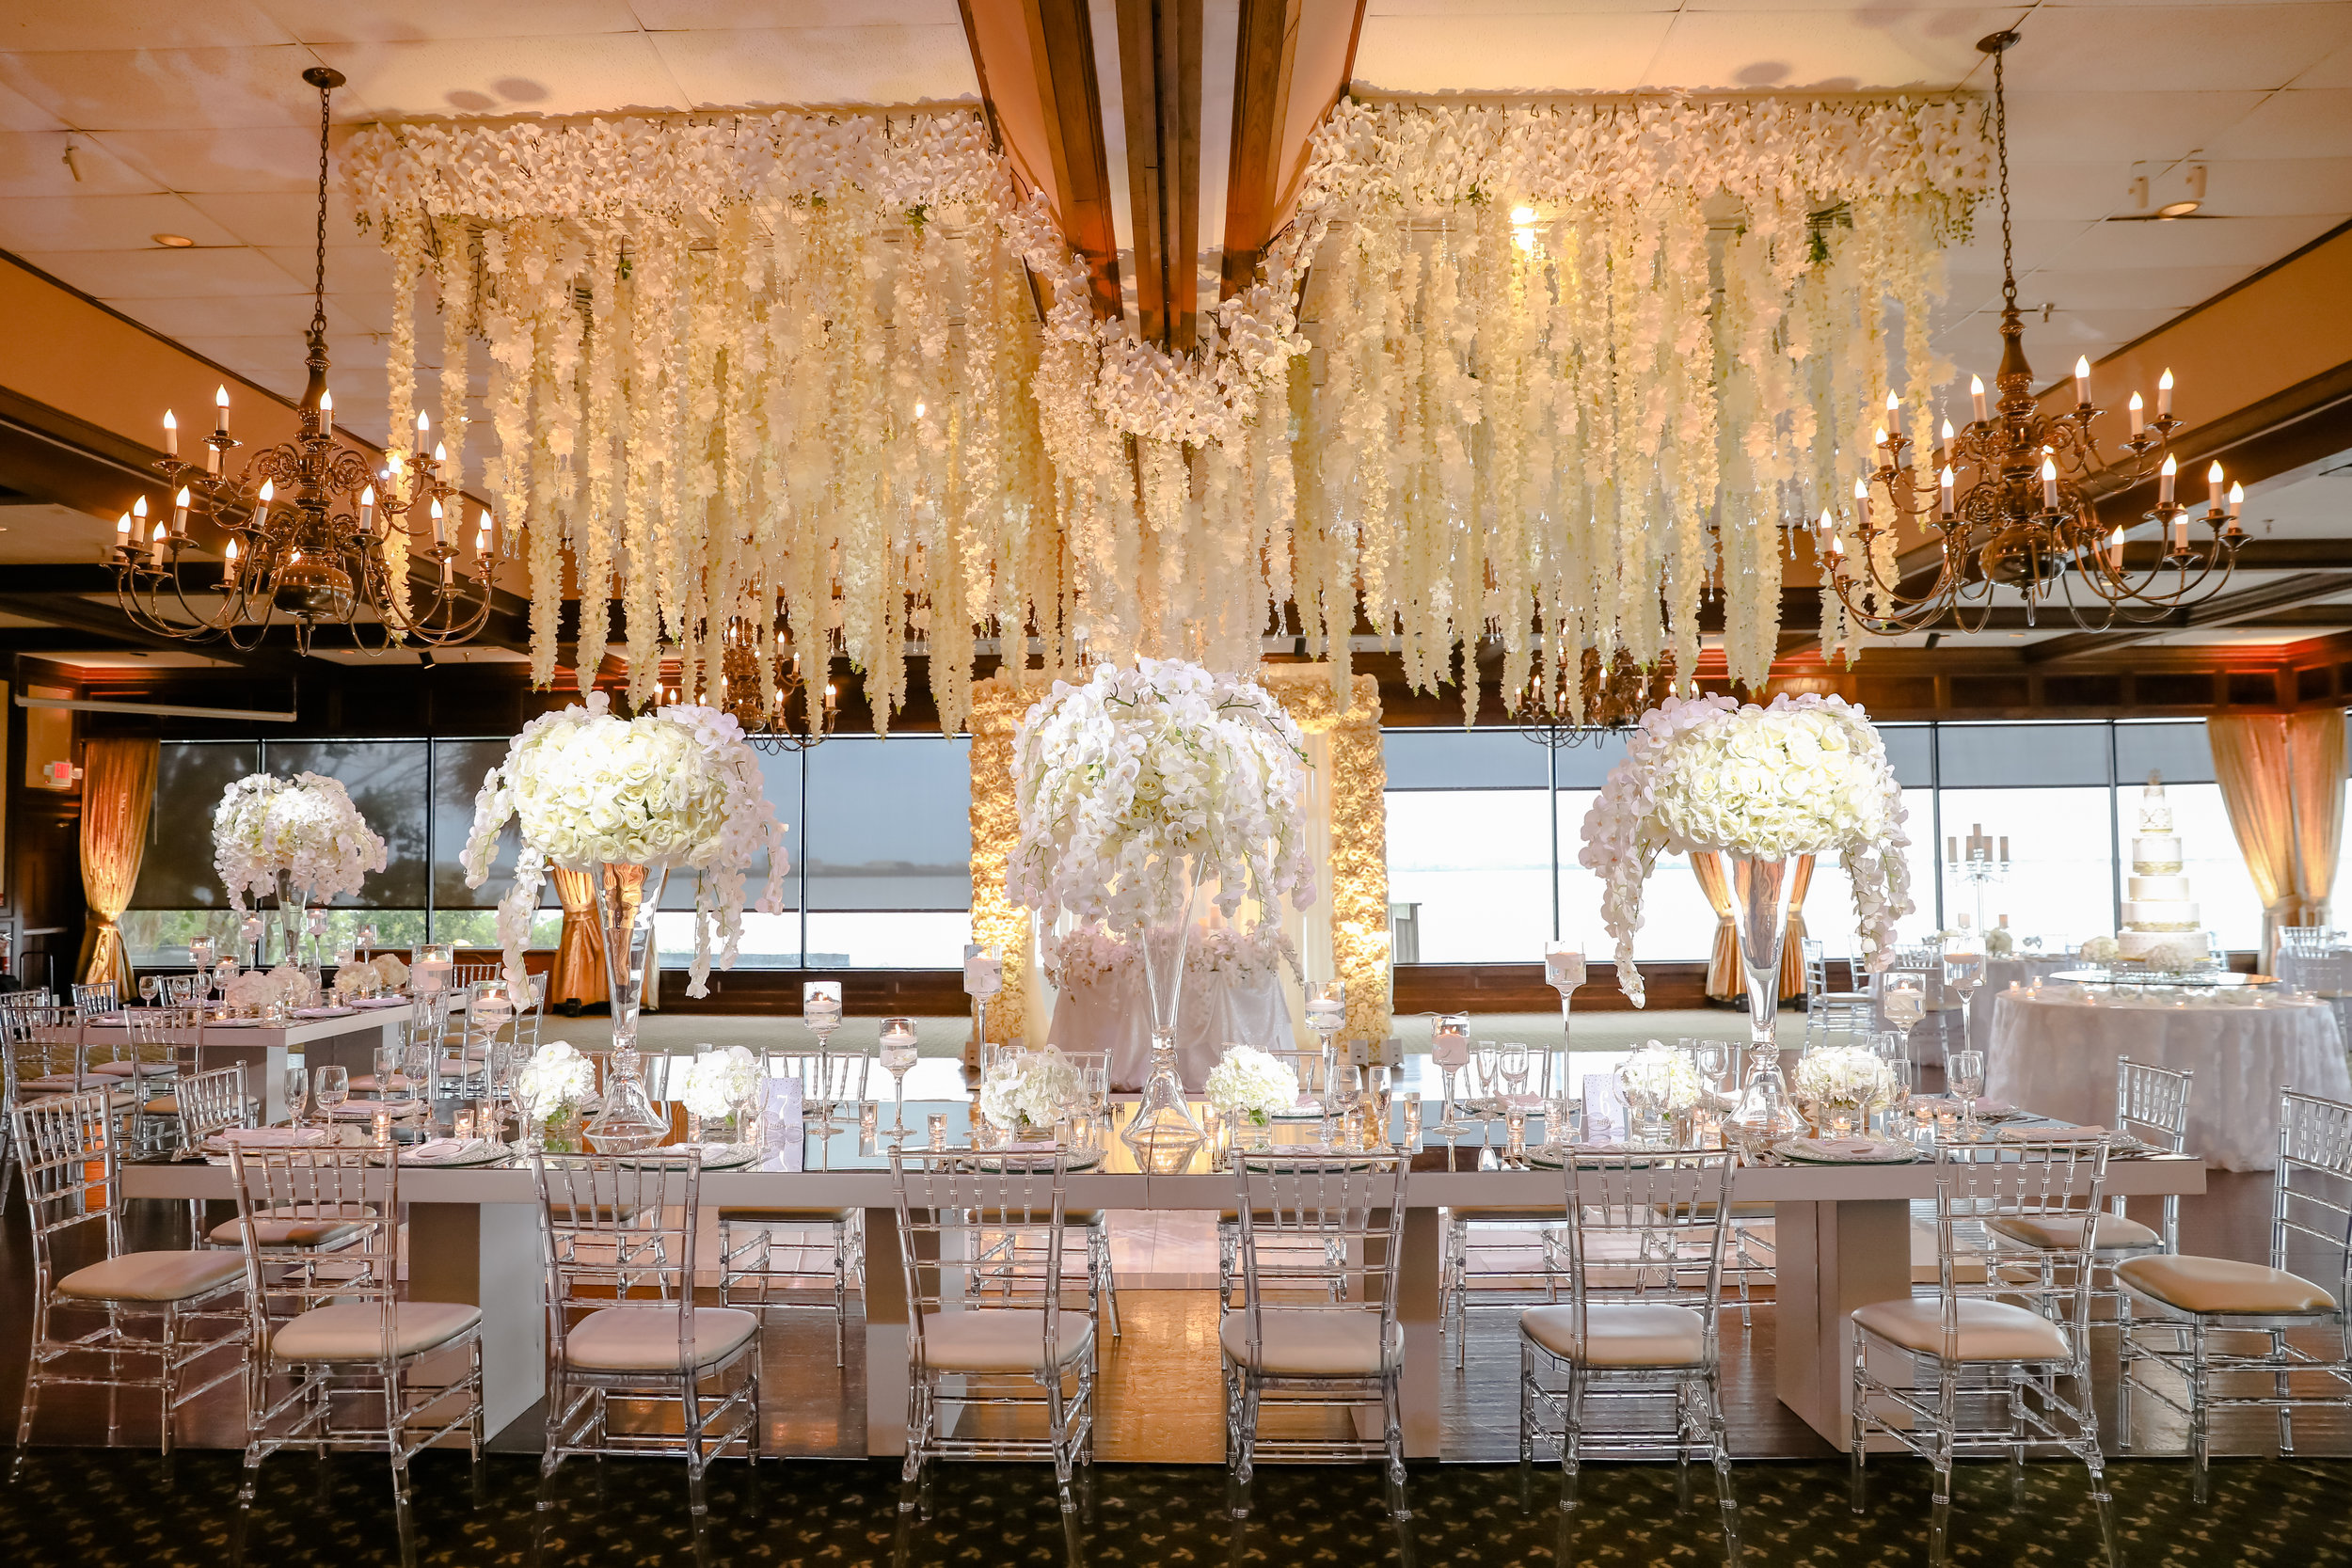 Crystal chiavari chairs and an abundance of lush florals helped create an elevated and elegant affair.